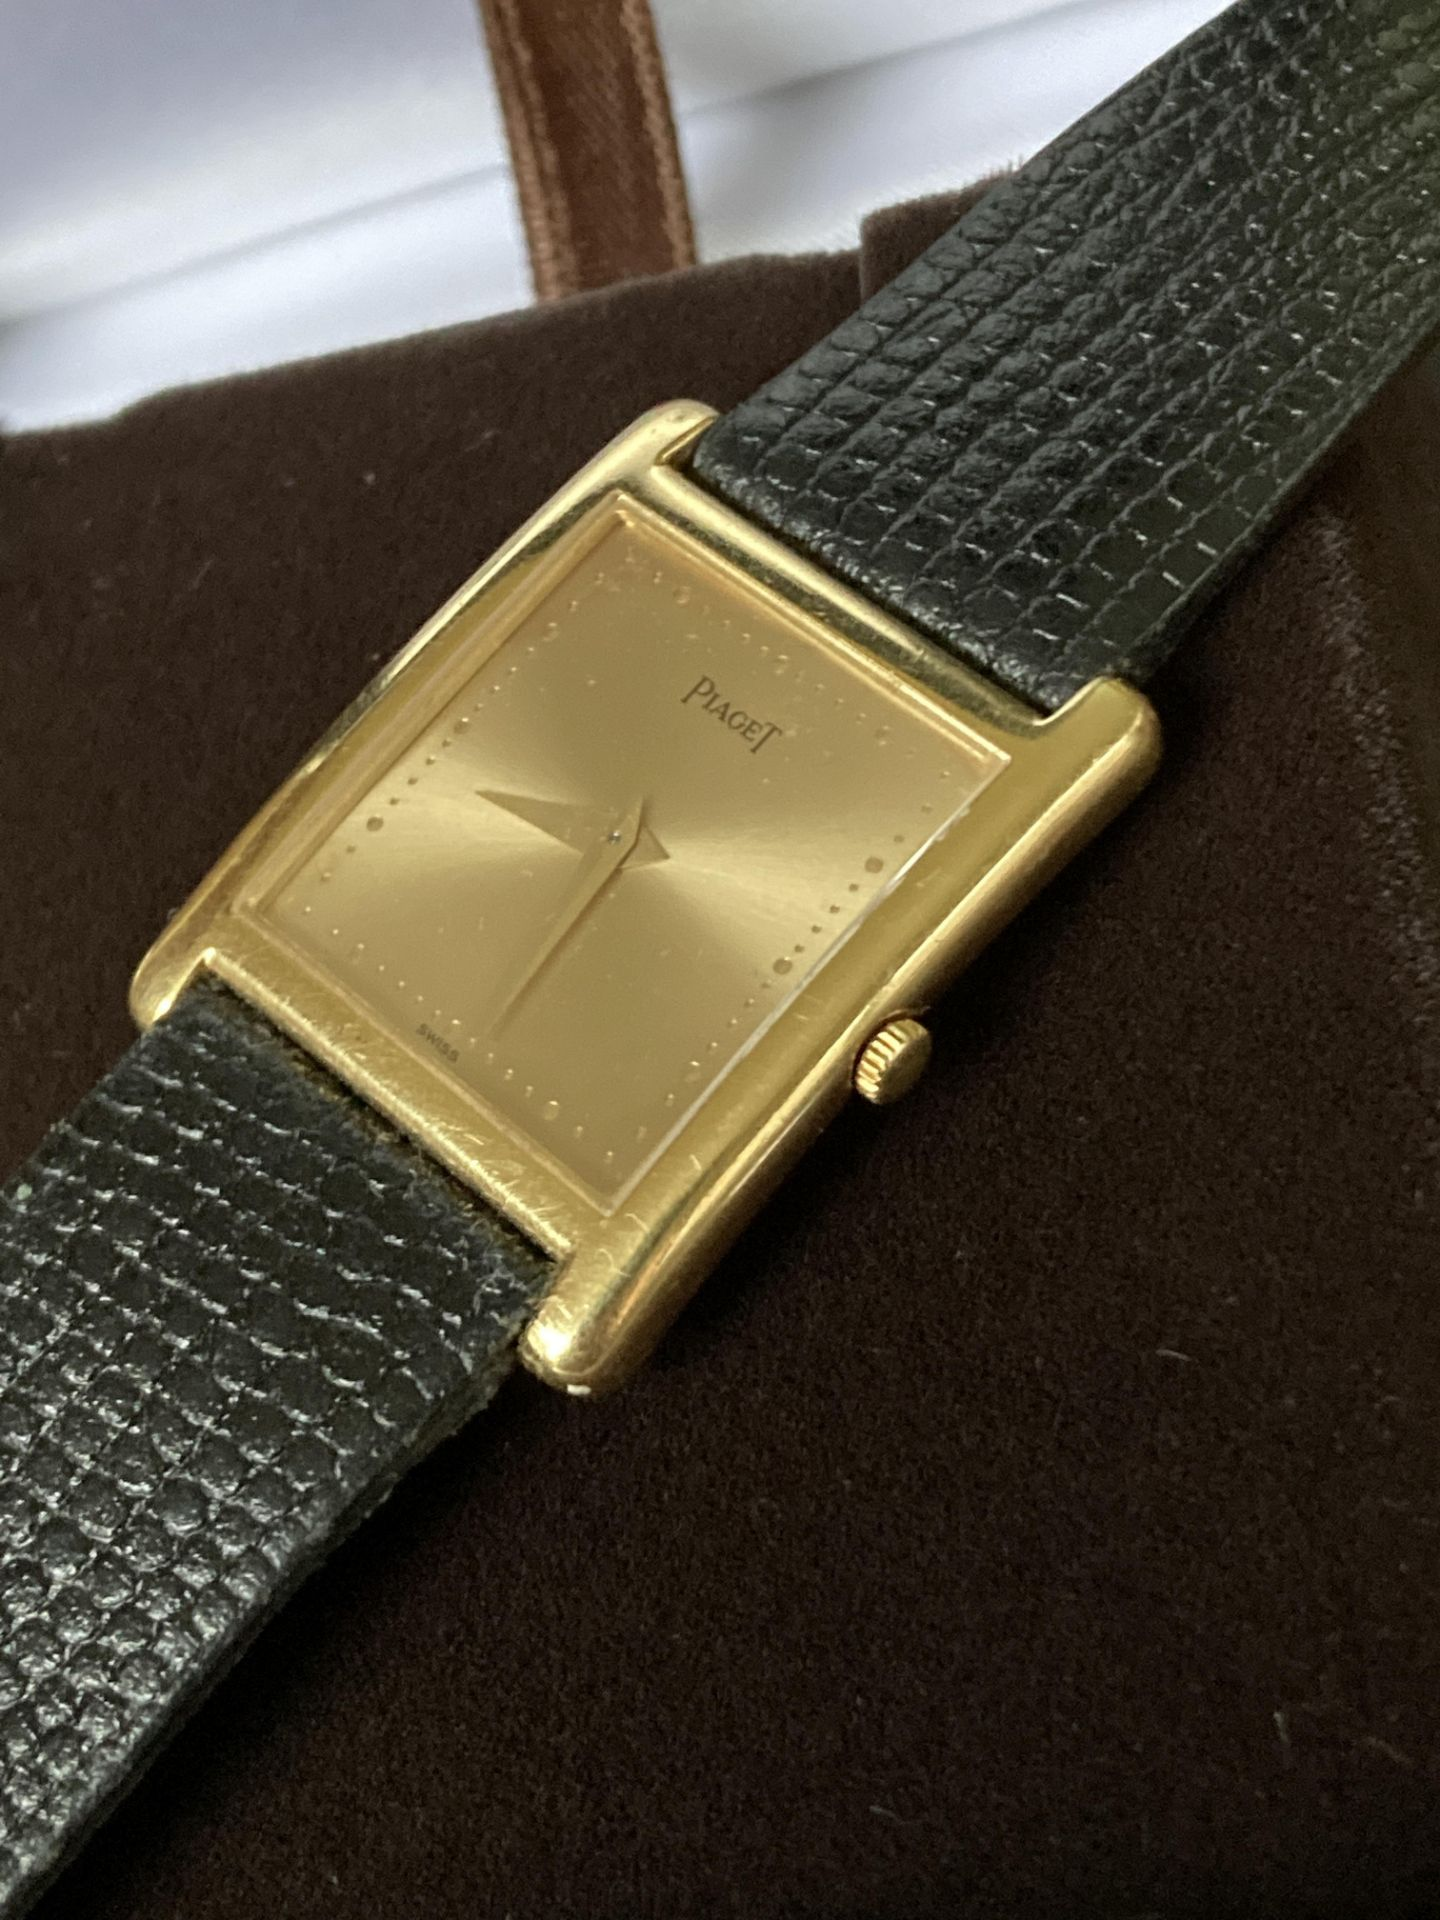 GOLD PIAGET WATCH - 22MM - Image 2 of 6